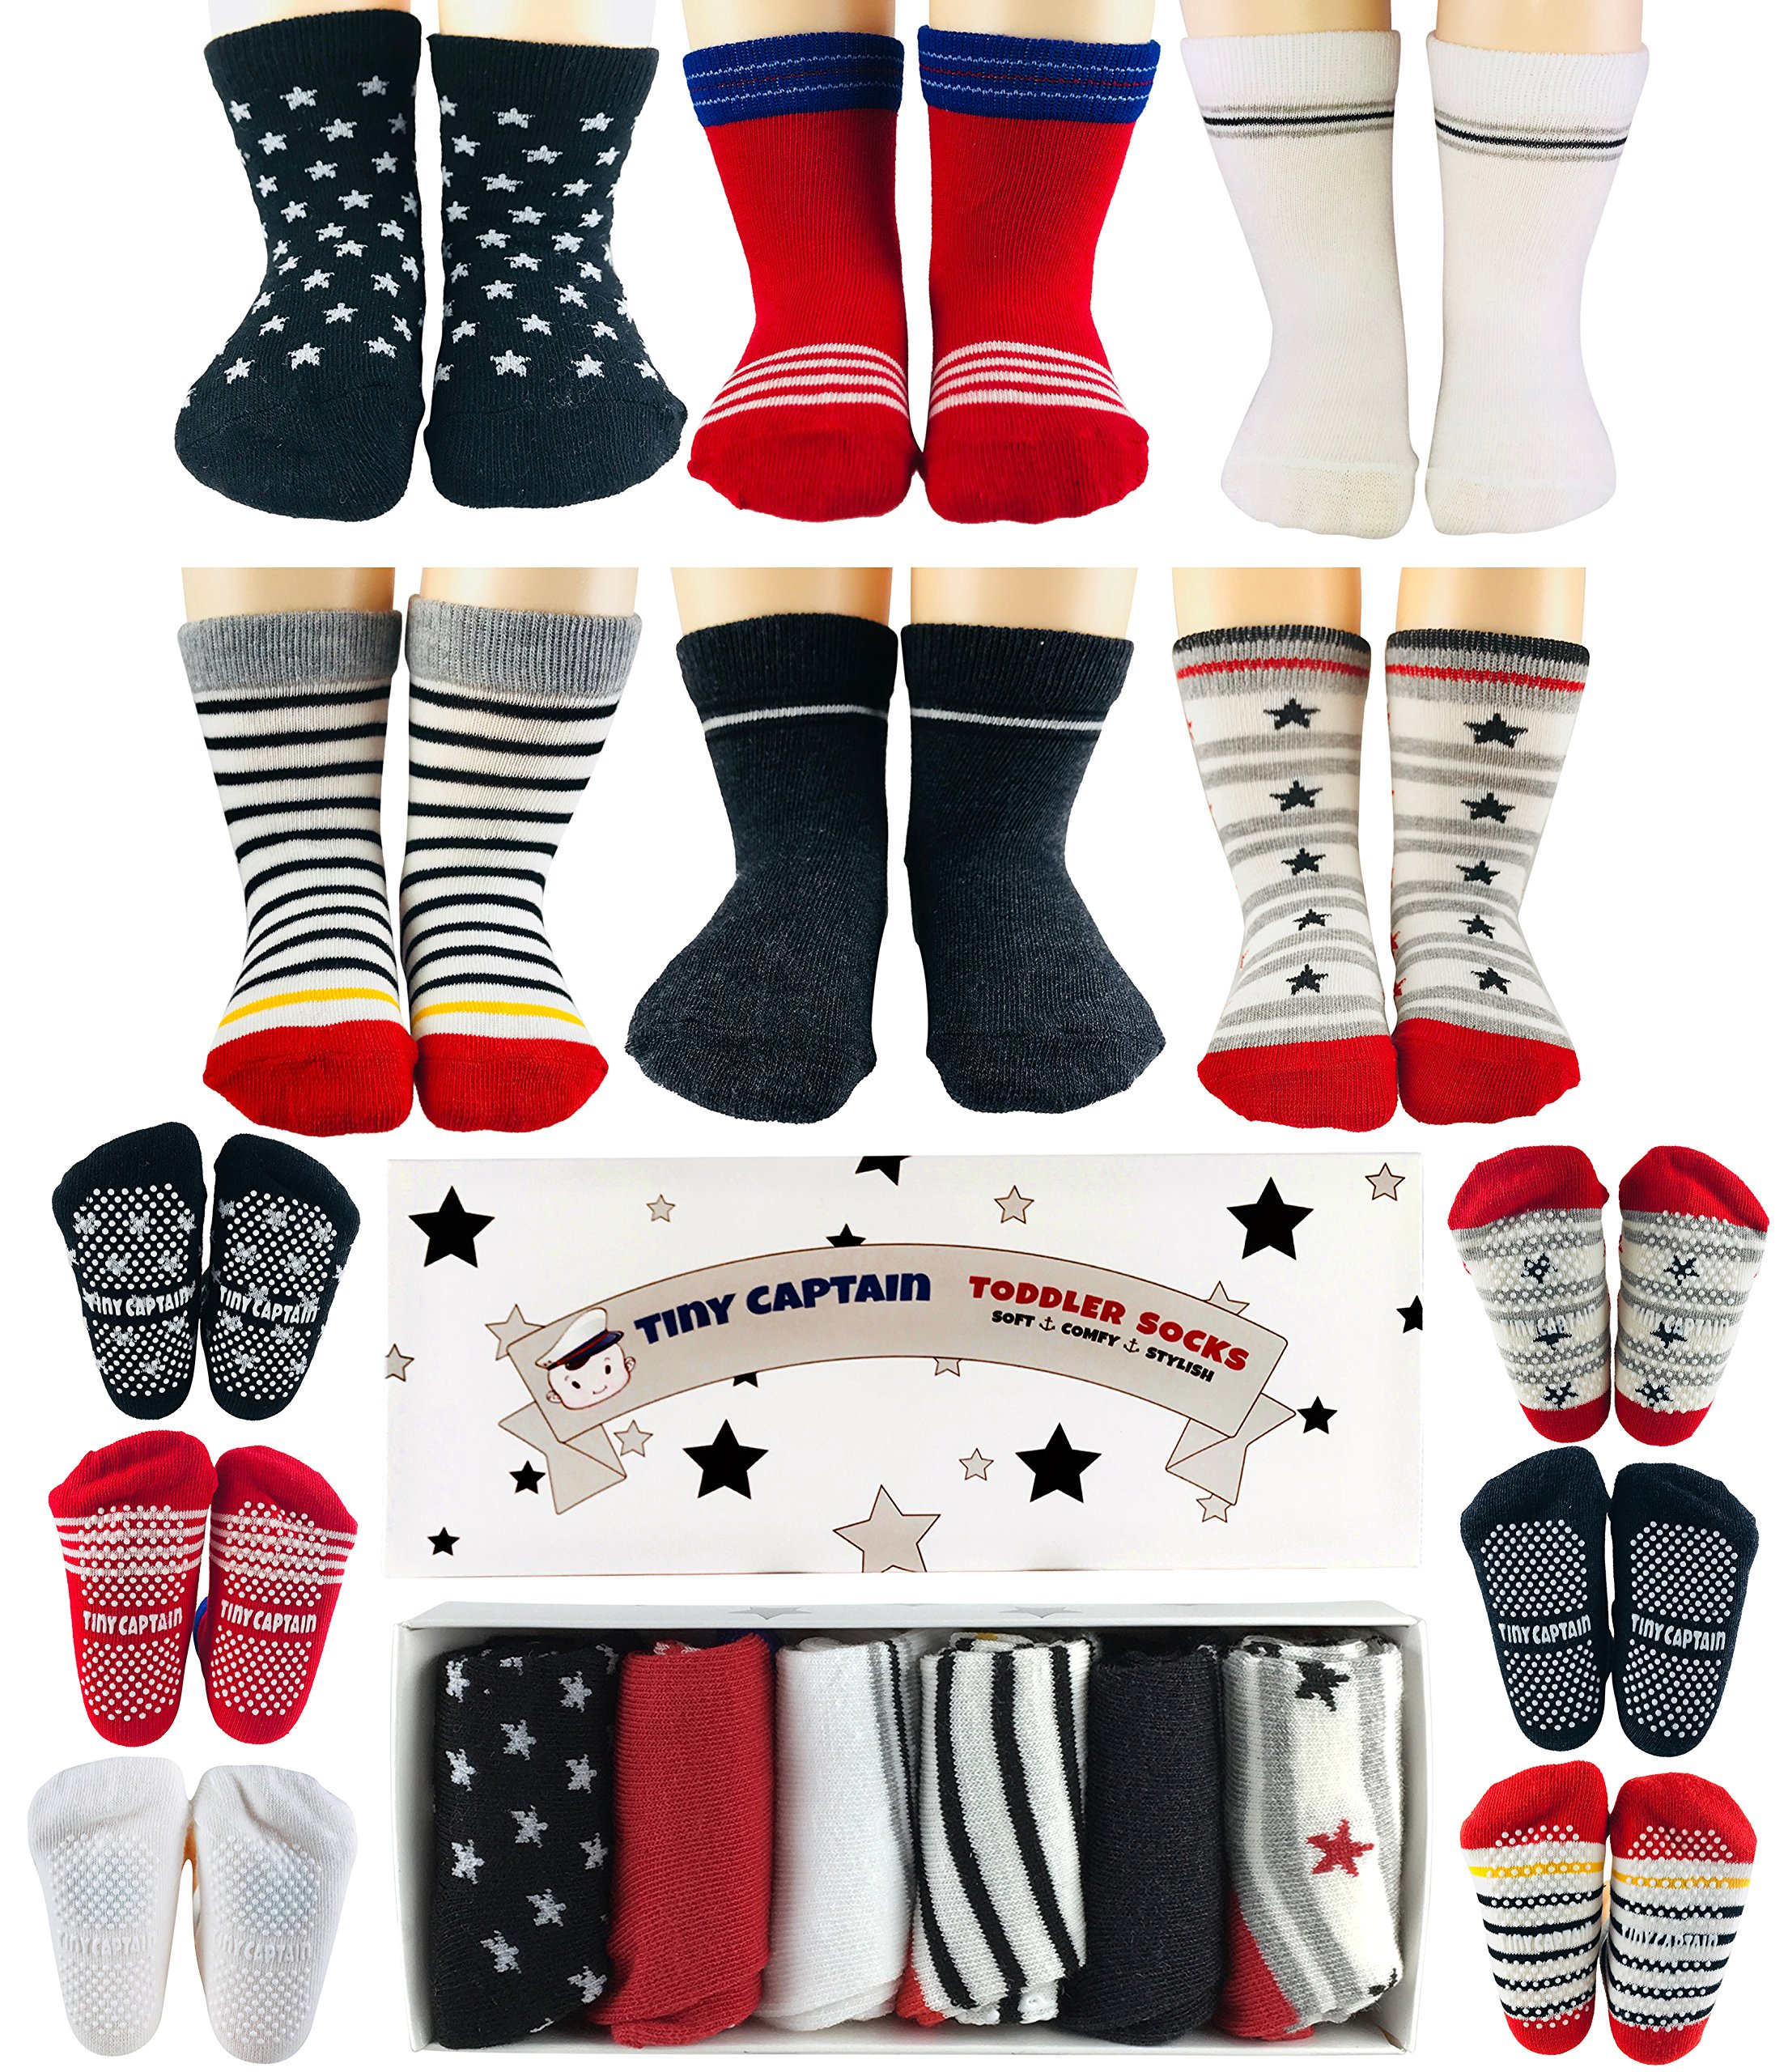 Baby Boy Socks for Toddler 1-2 Year Old Boys Gifts Non Skid Anti Slip Grip Sock Gift 8-24 Months Set by Tiny Captain (Red, Black, White)